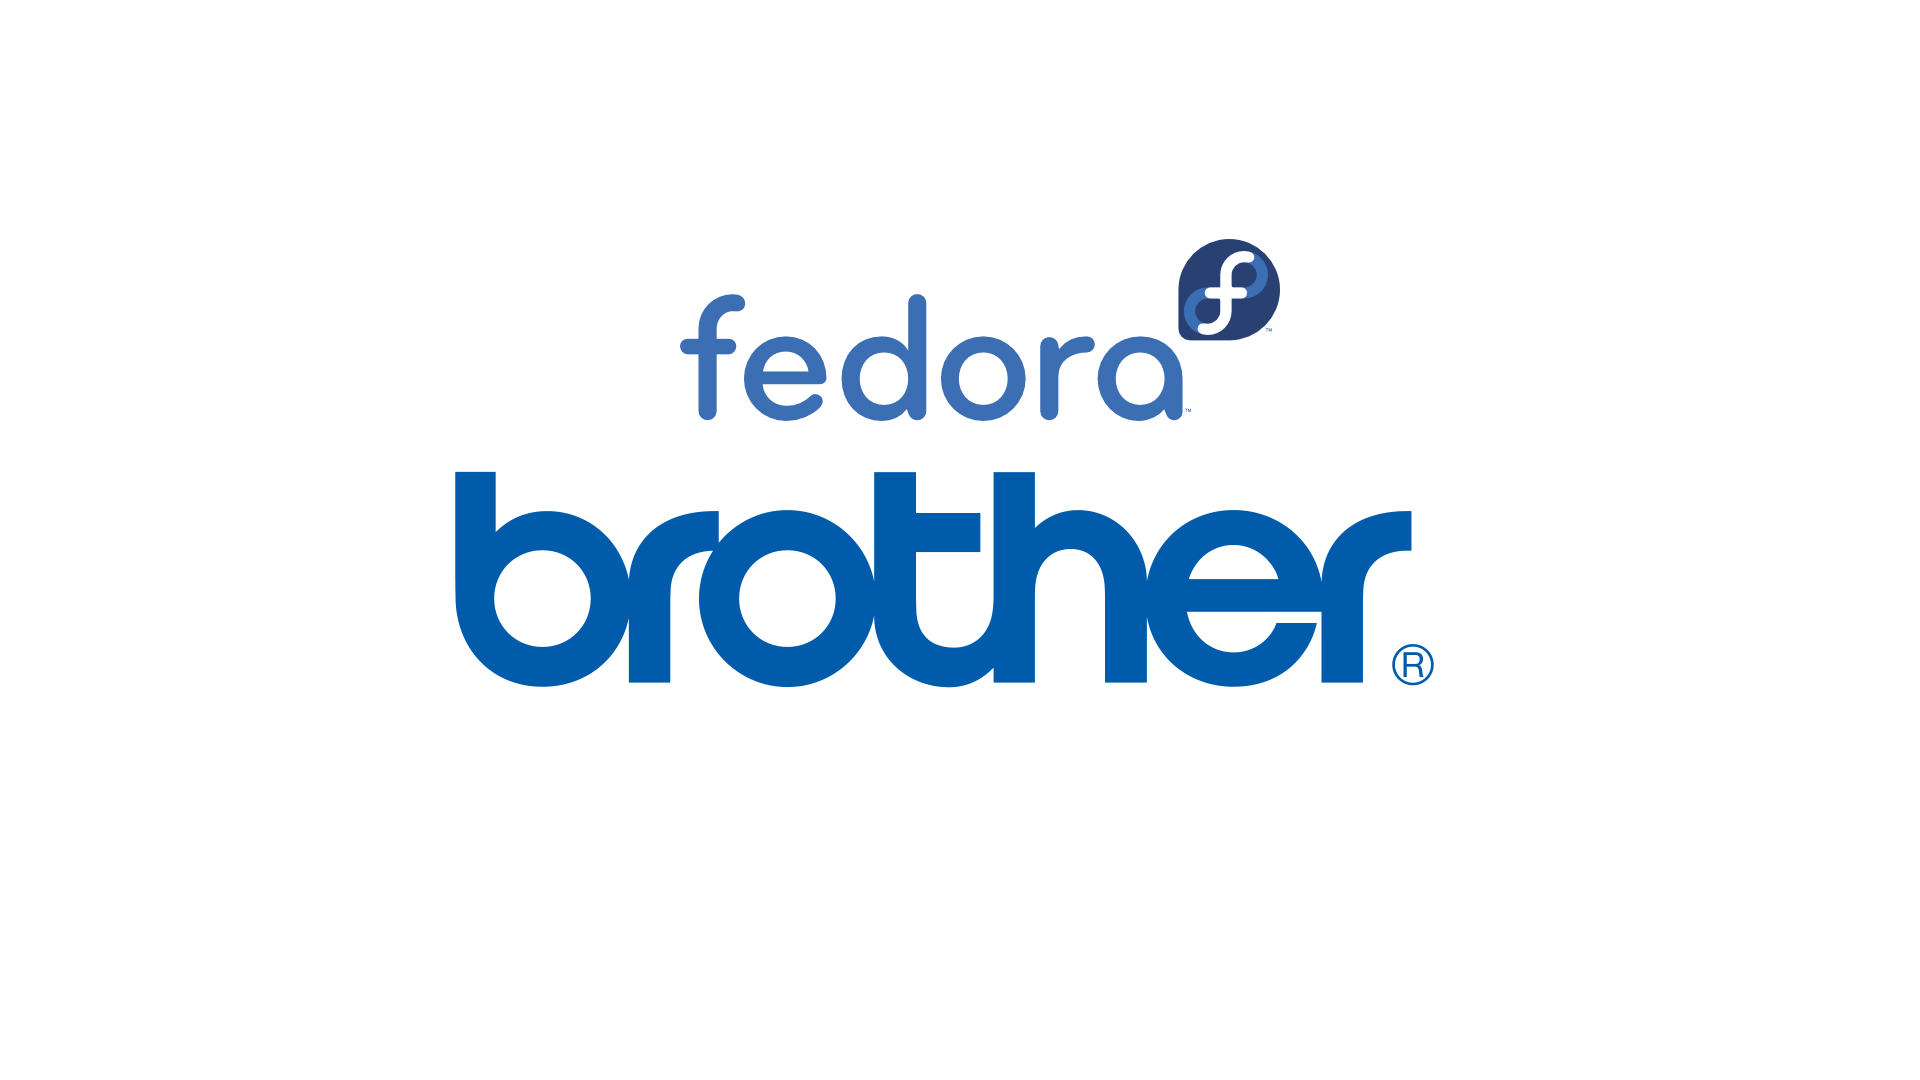 Brother / Fedora